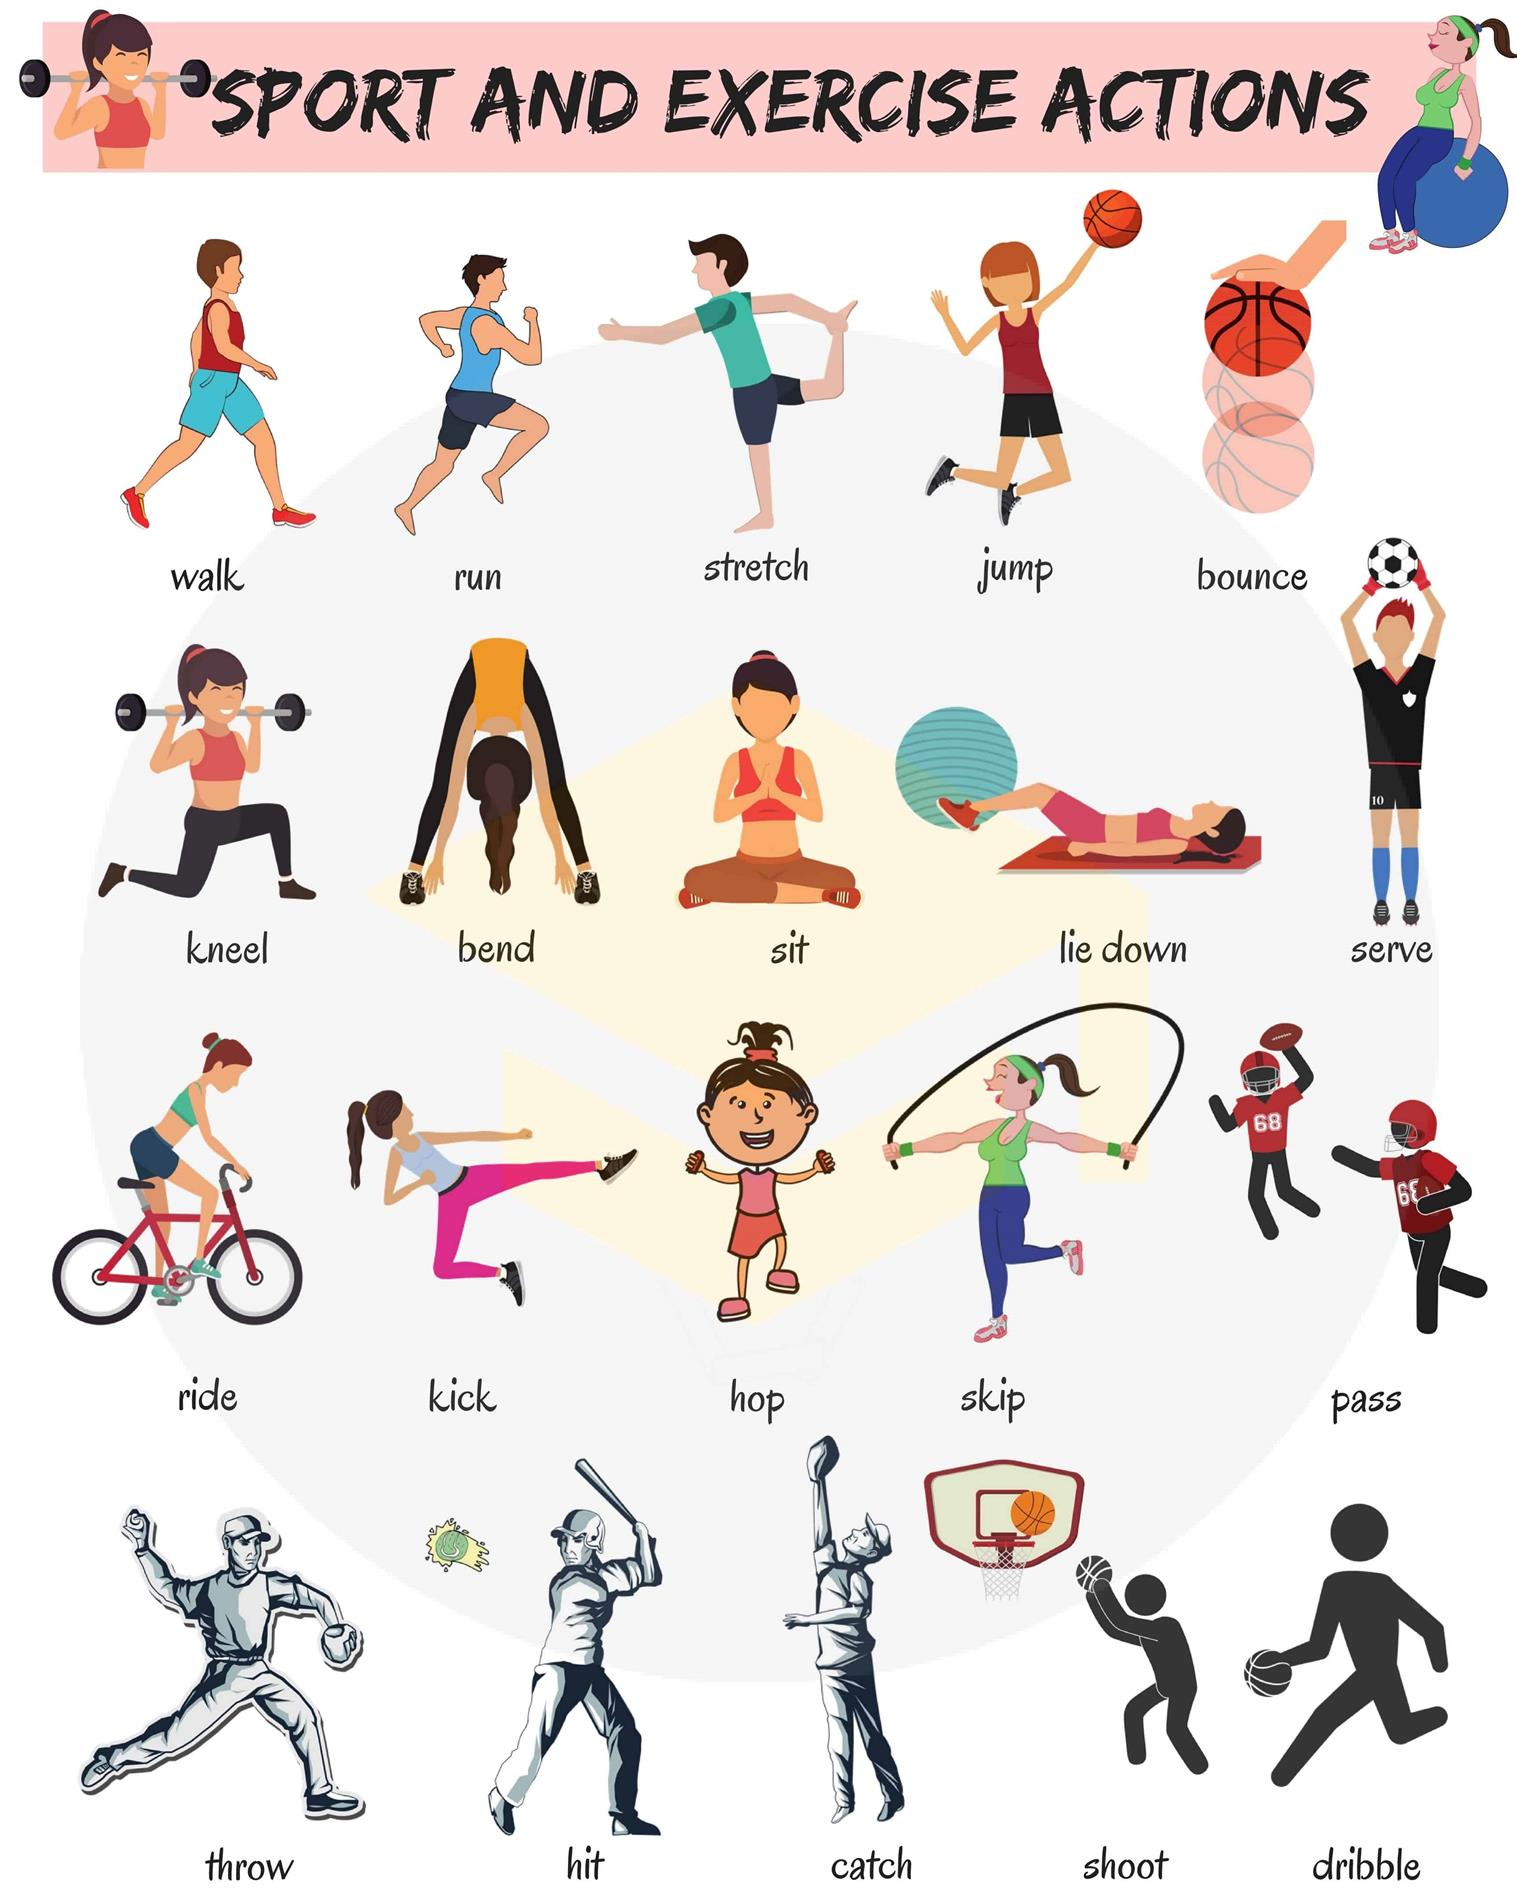 Sport and Exercise Movements